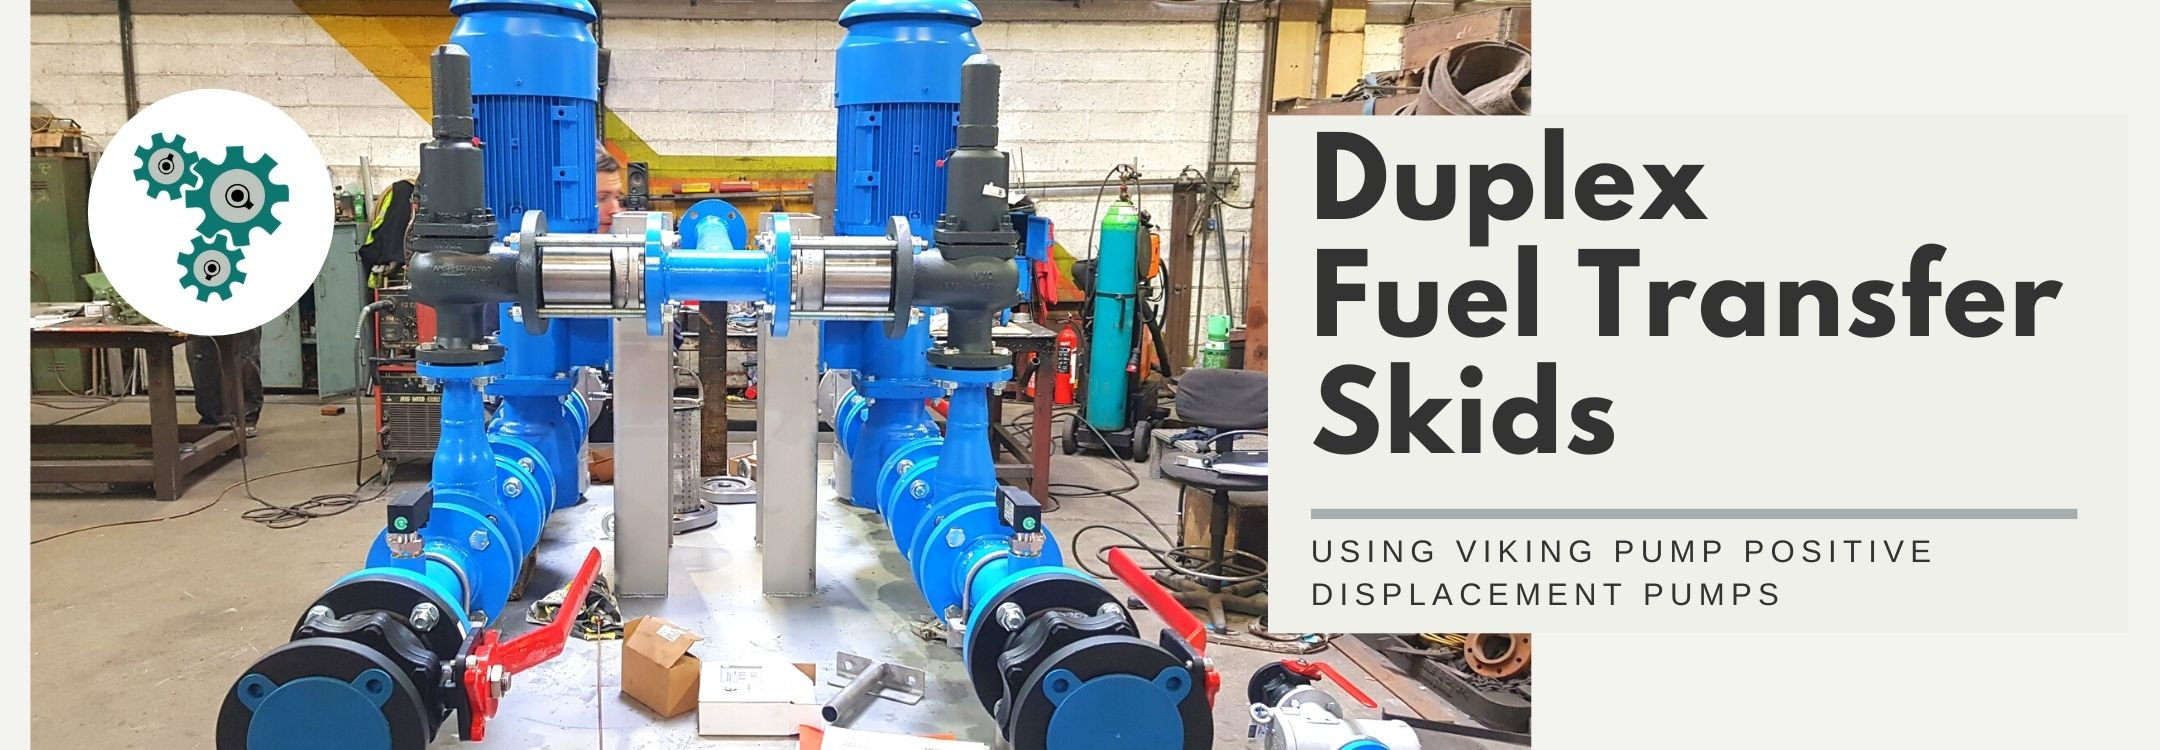 Positive displacement pumps viking pump in fuel transfer for hyperscale data centre a casestudy by Thomson Process Equipment and Engineering Ltd Bray Ireland (1)